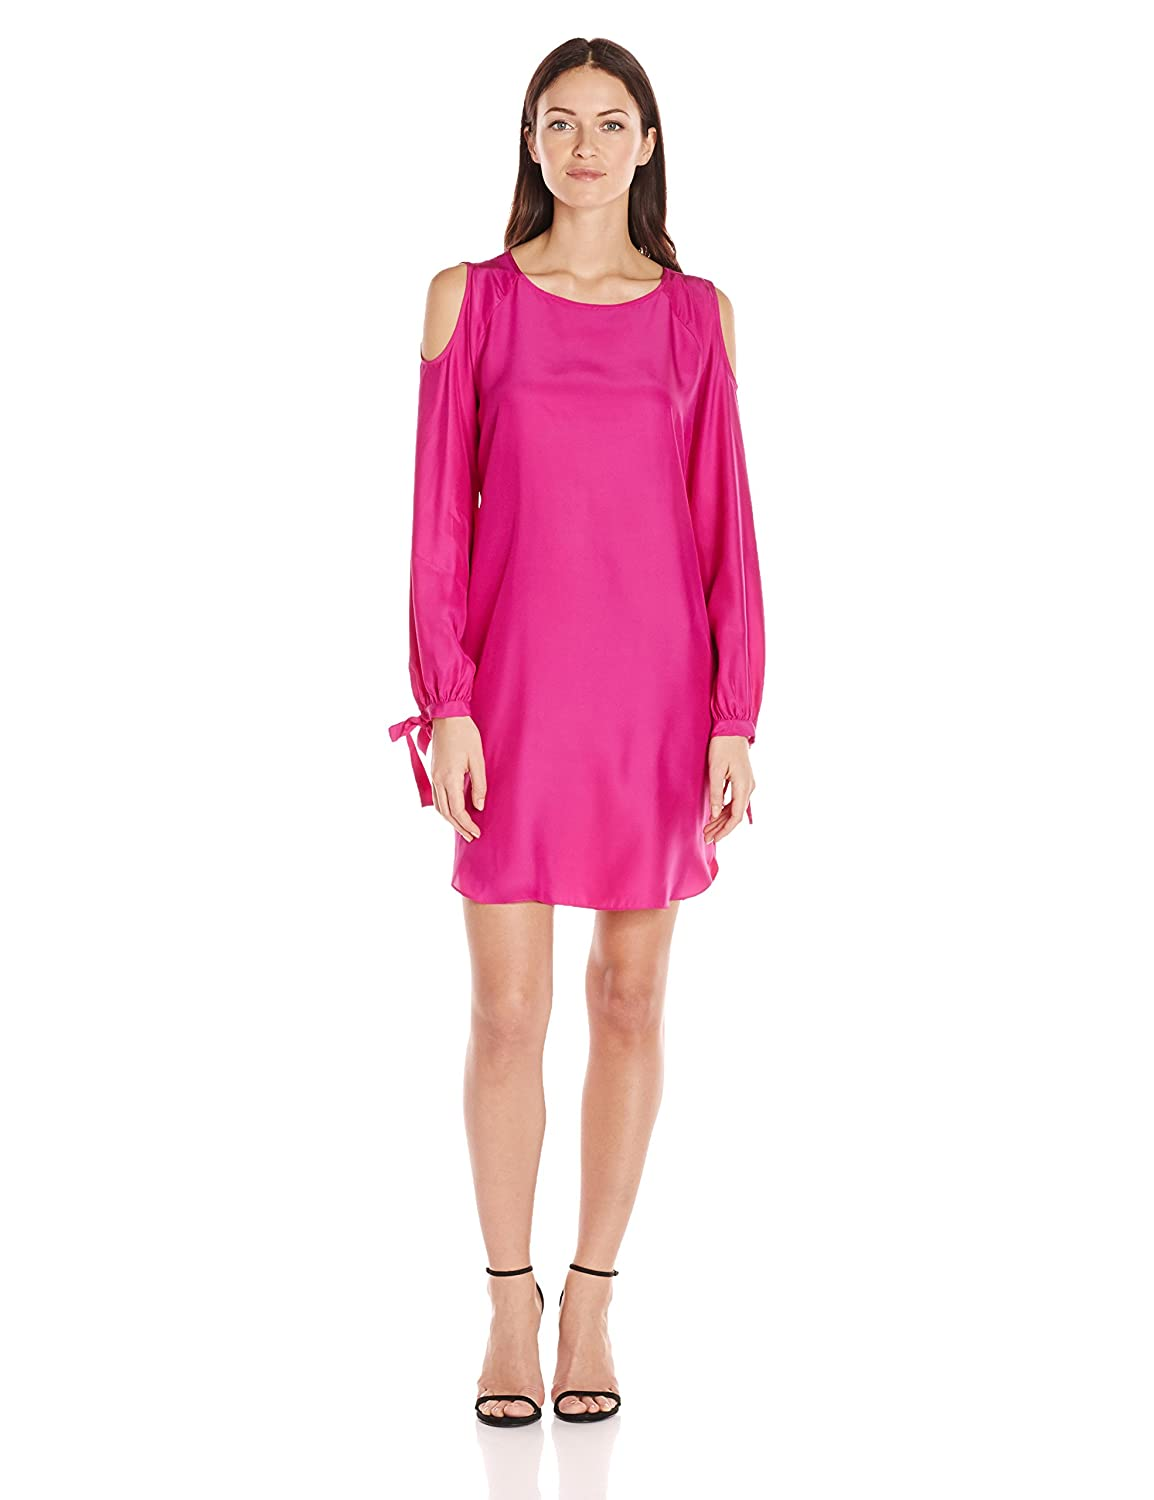 Cranberry Amanda Uprichard Womens Sullivan Dress Dress